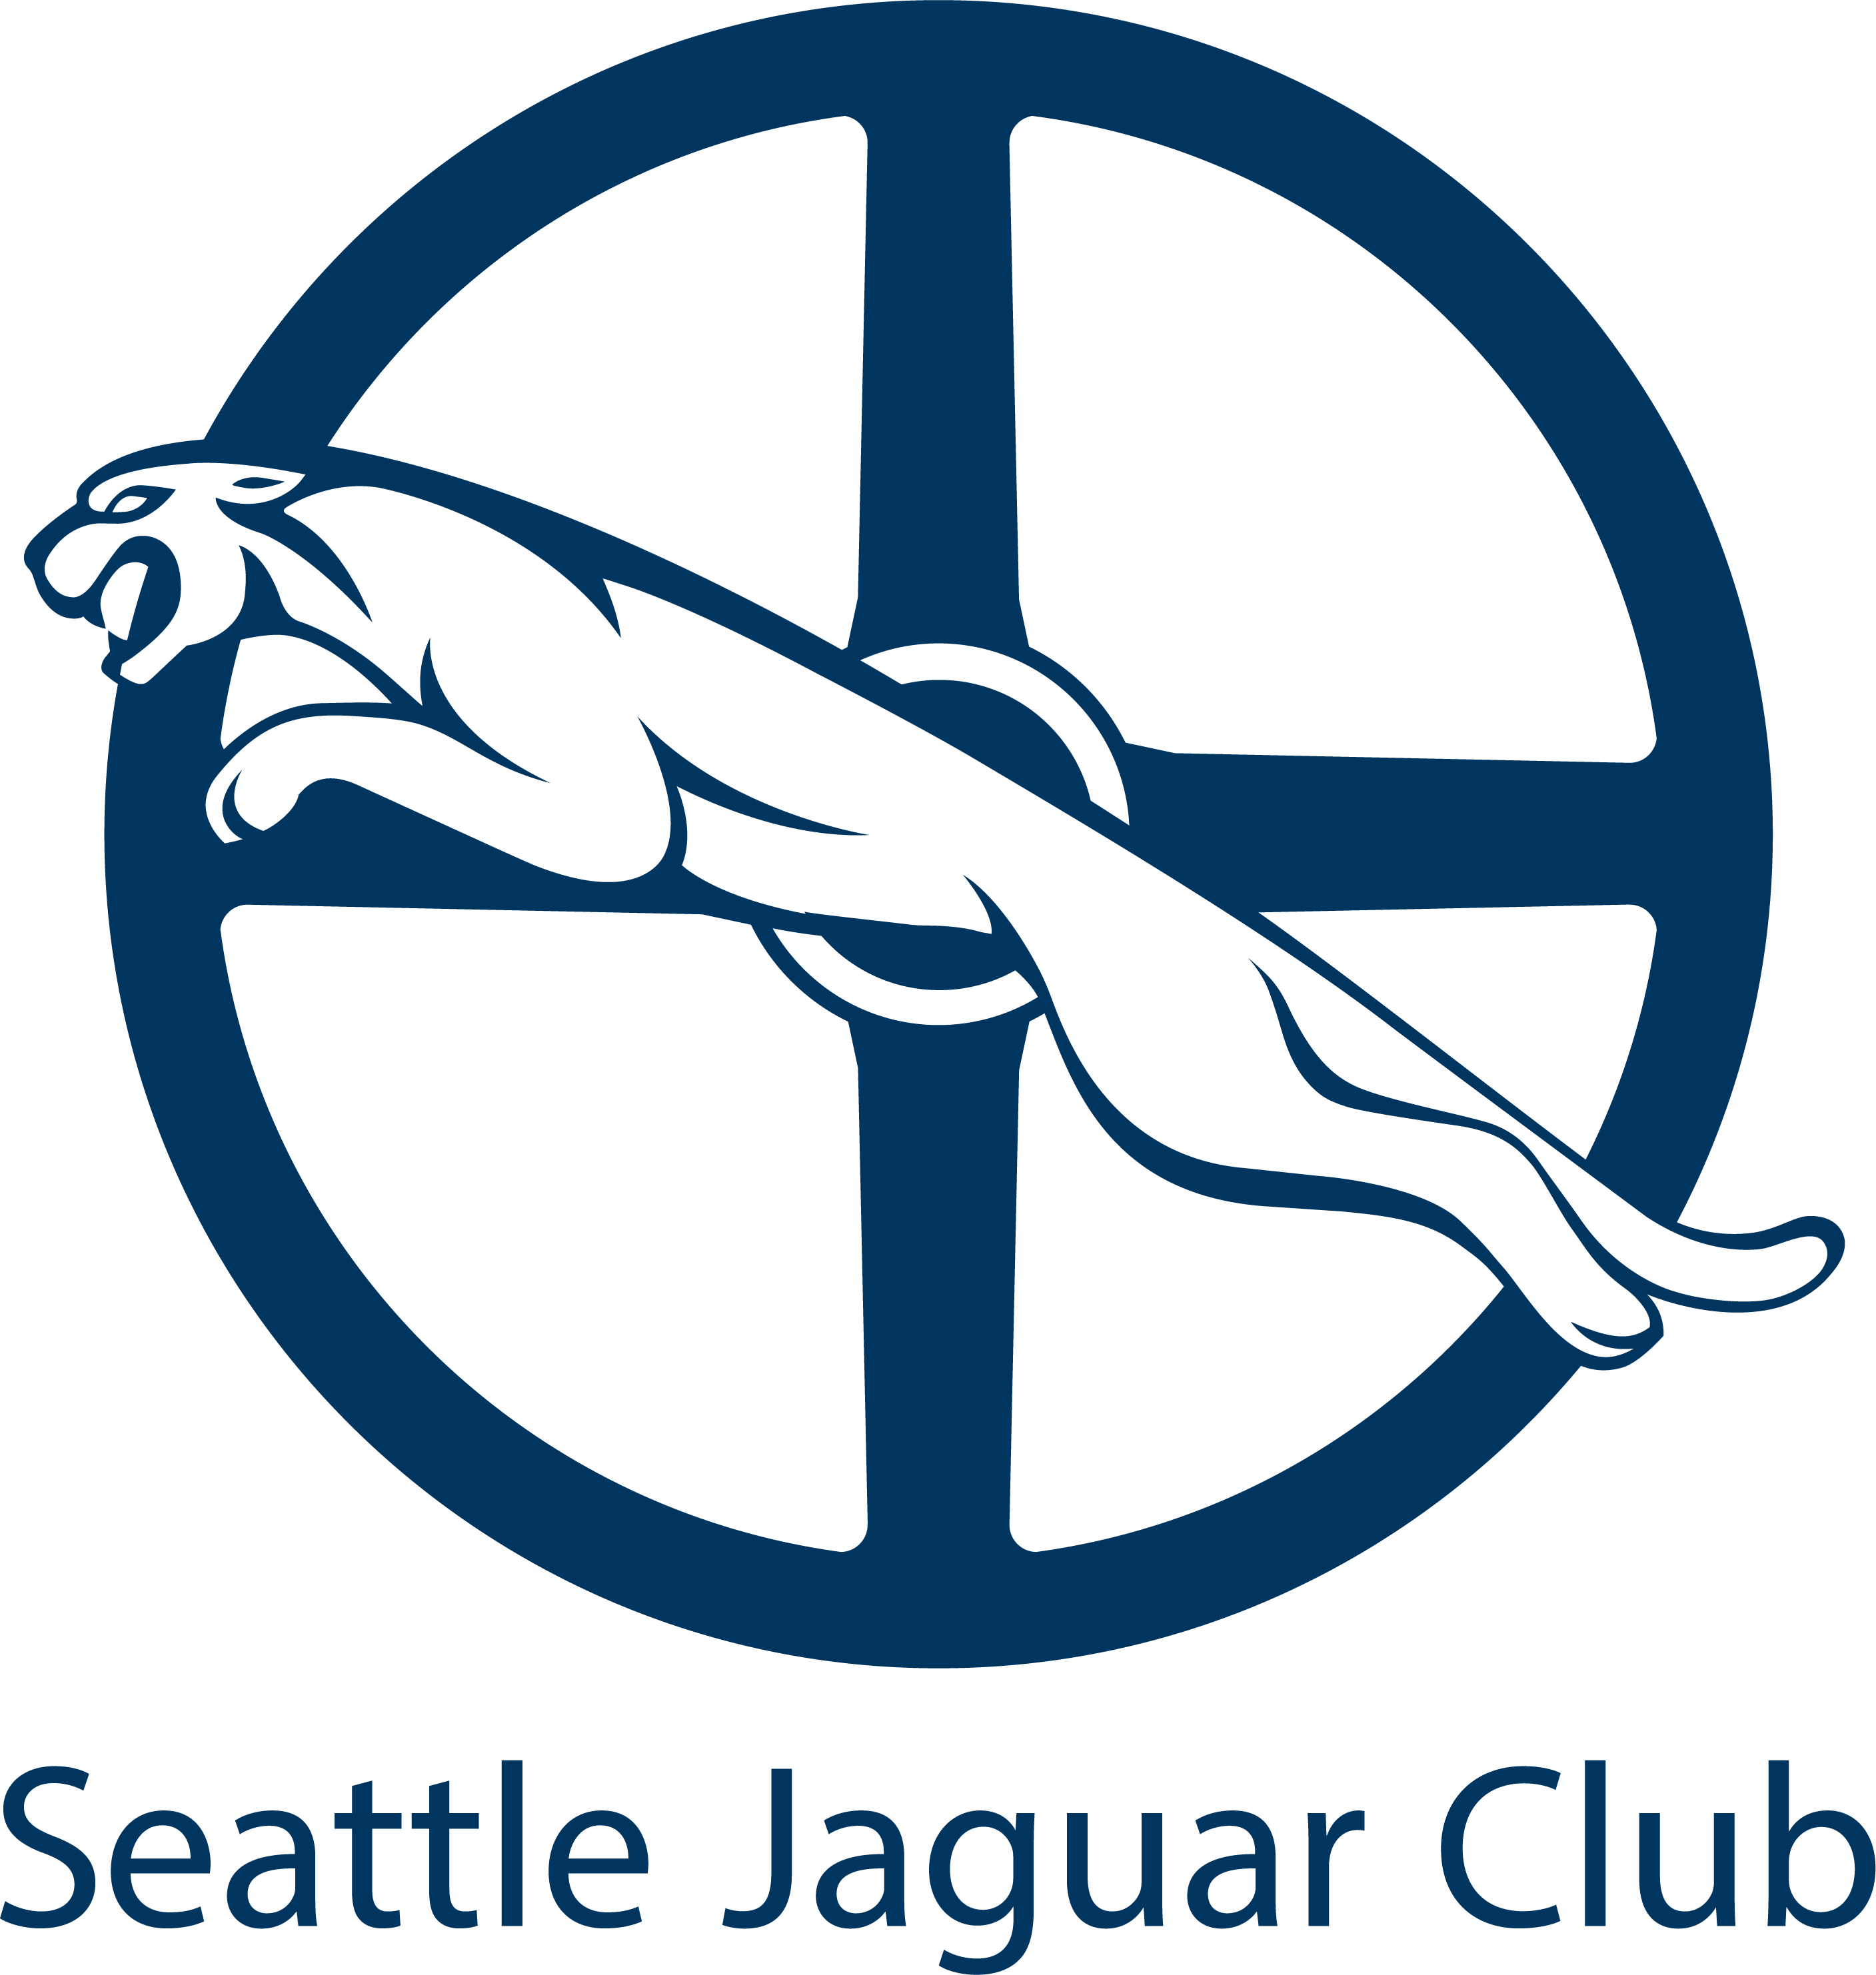 Seattle Jaguar Club